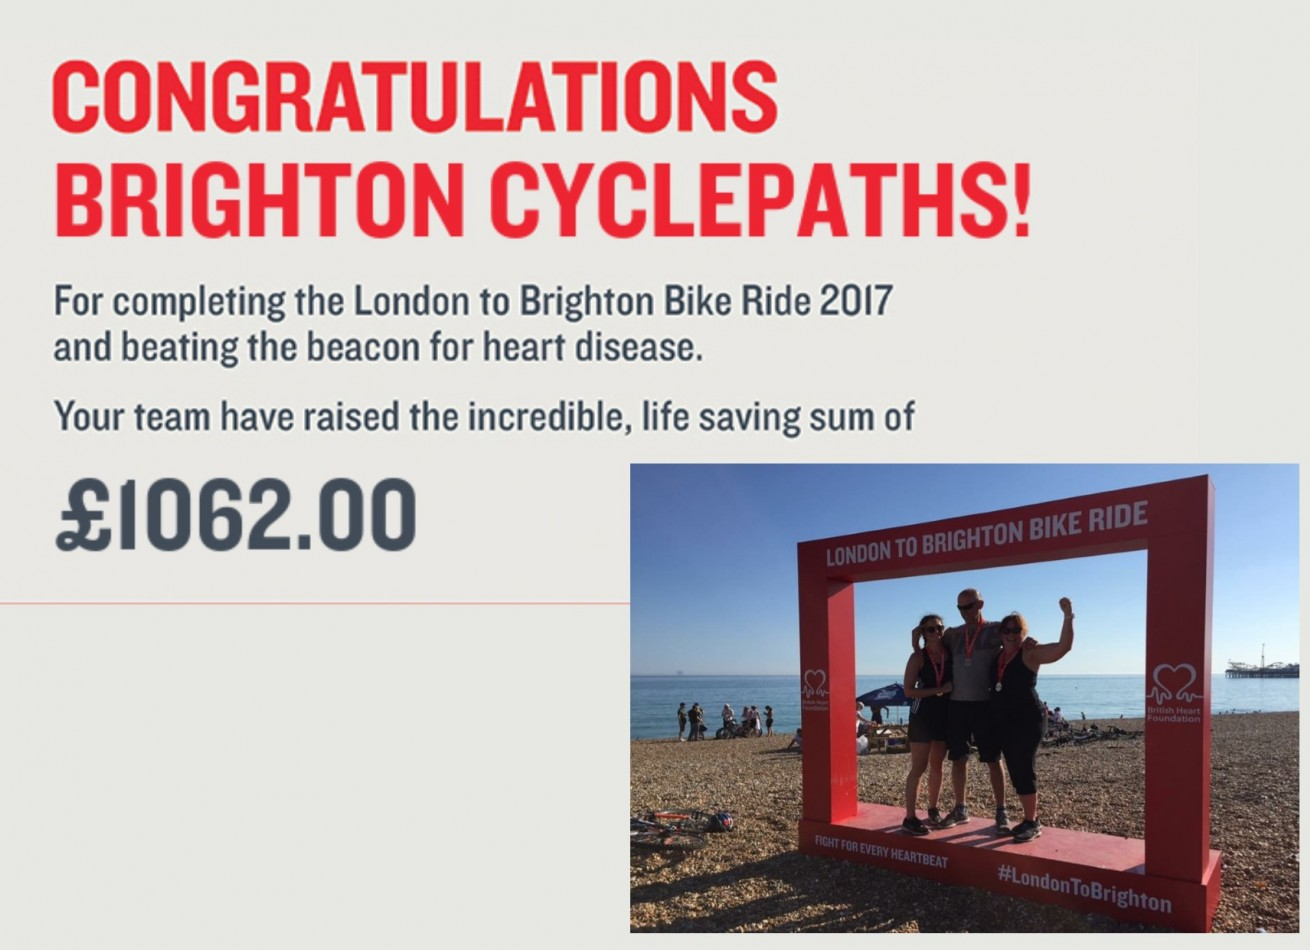 London to Brighton Bike Ride.